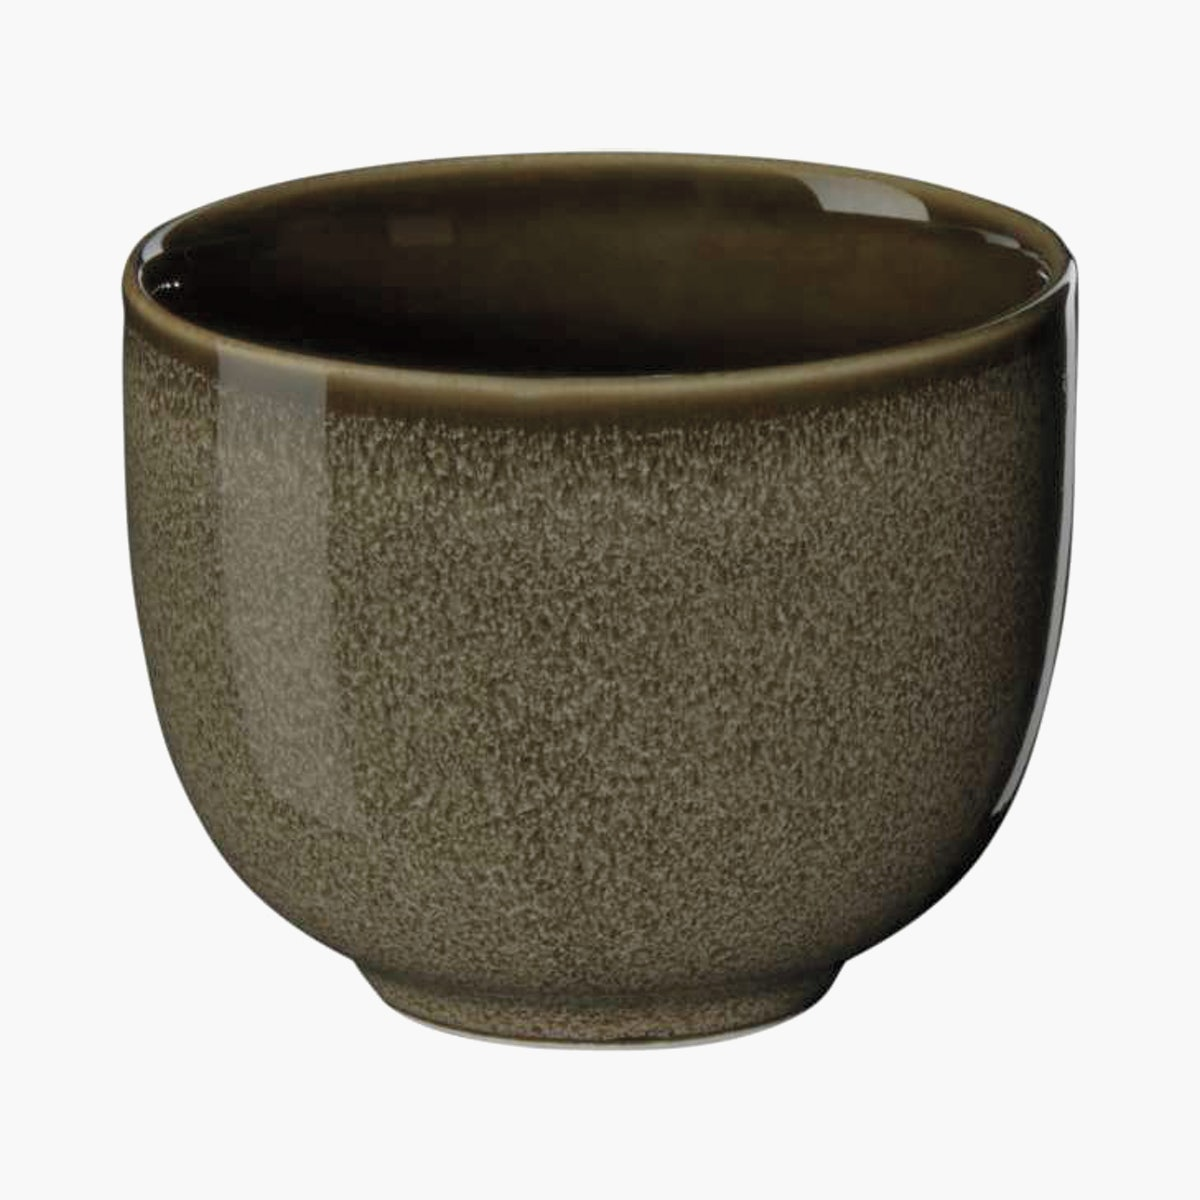 Kolibri Tea Bowl